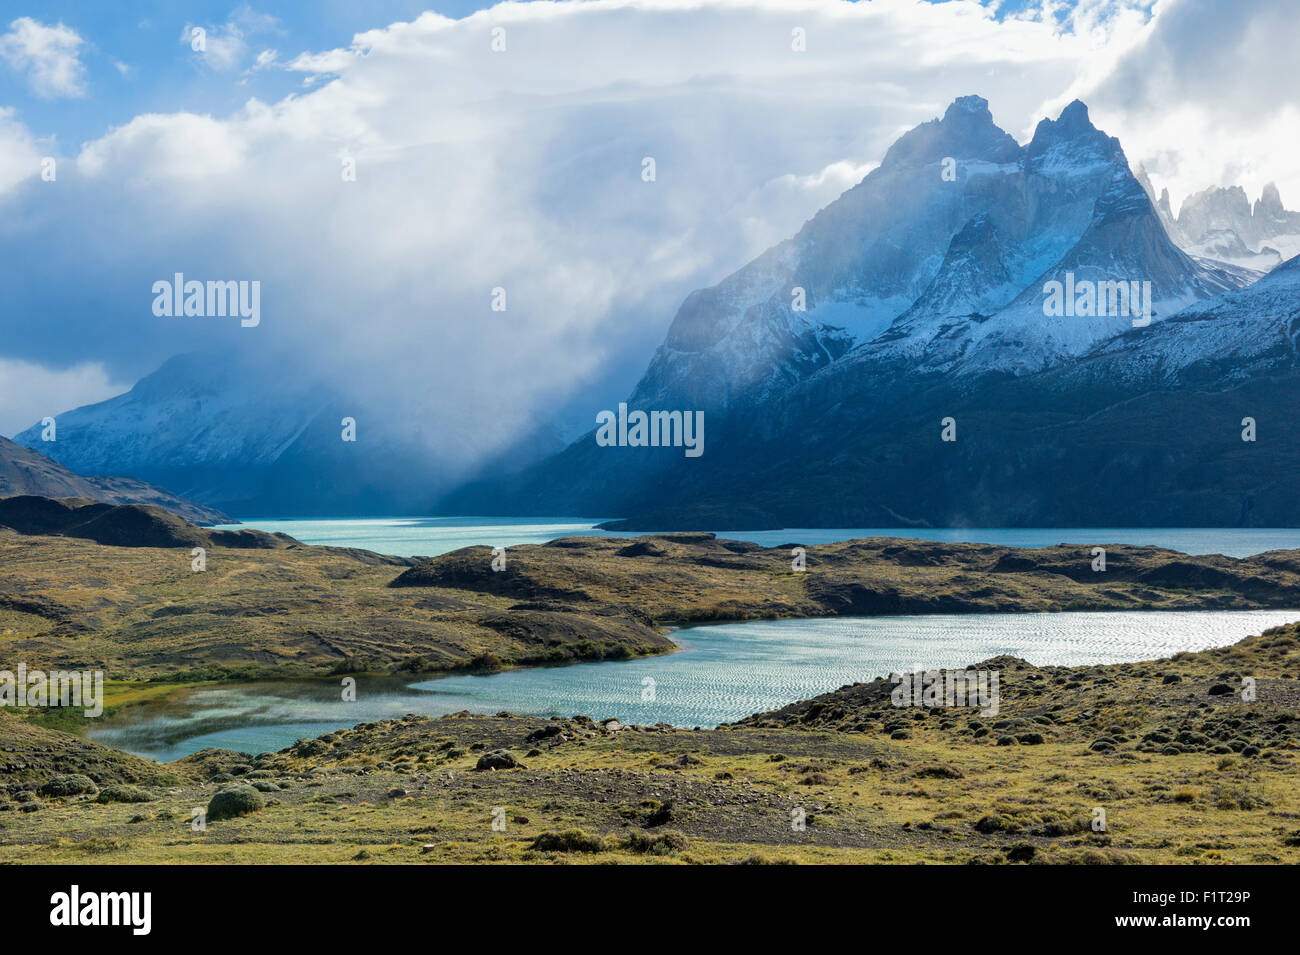 Cloud formations over Lago Nordenskjold, Torres del Paine National Park, Chilean Patagonia, Chile, South America - Stock Image